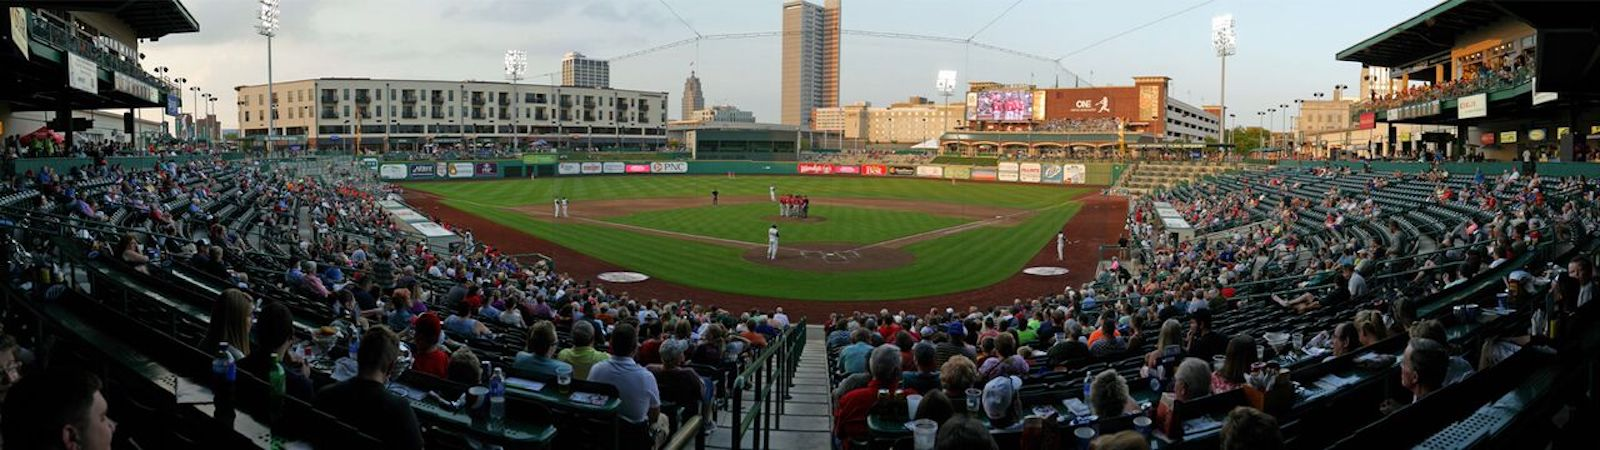 The Fort Wayne Tincaps are back for their 2018 season at Parkview Field. <span class='image-credits'>By Ray Steup</span>